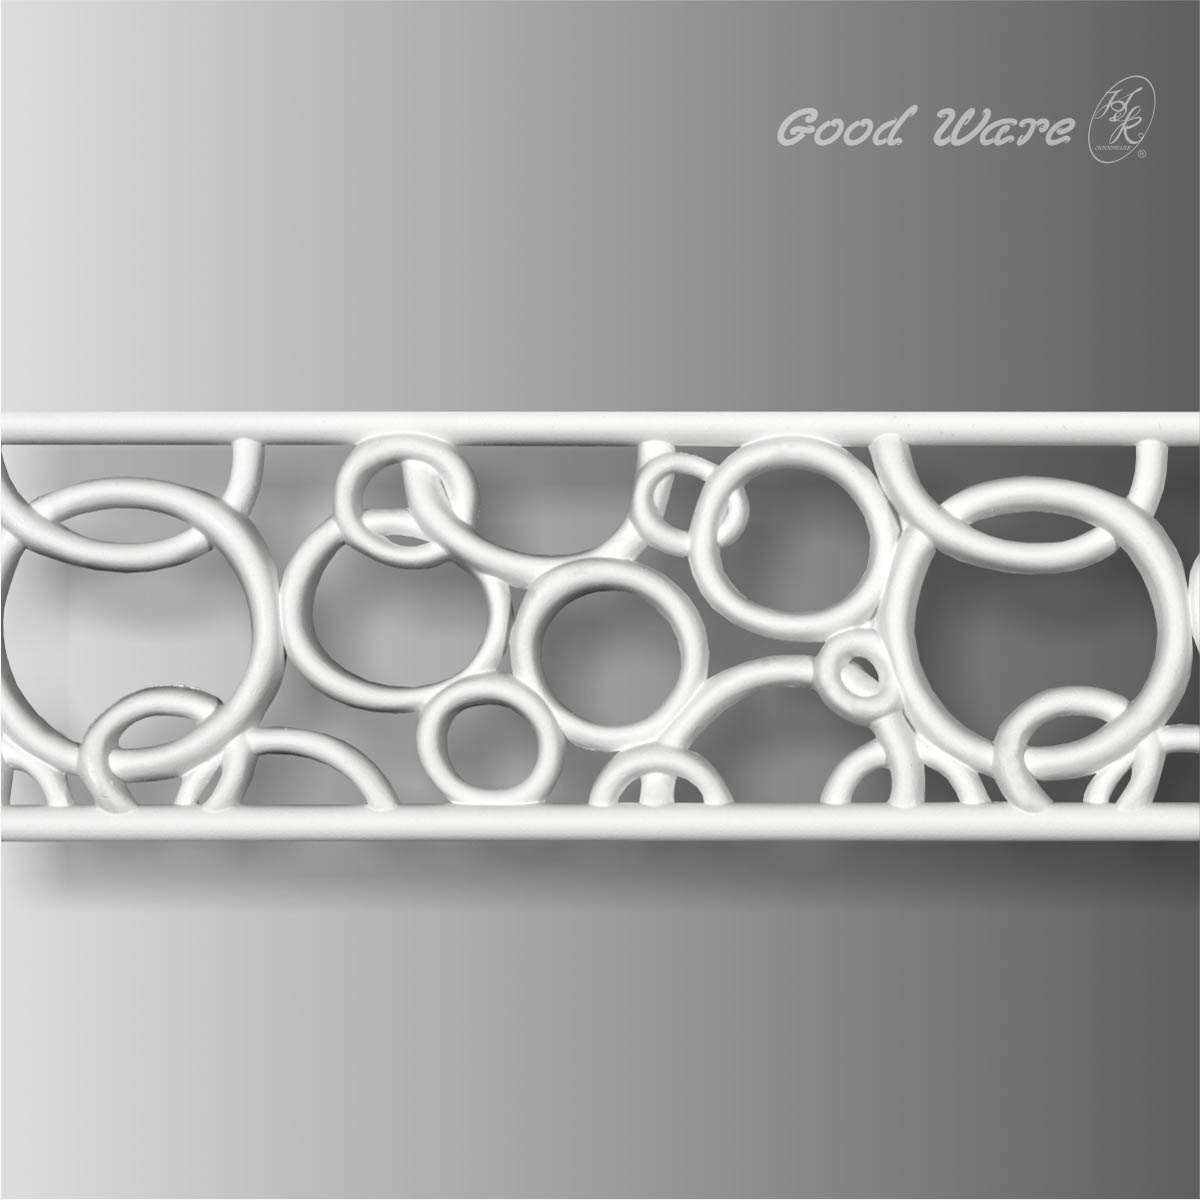 Polyurethane decorative pierced molding for sale